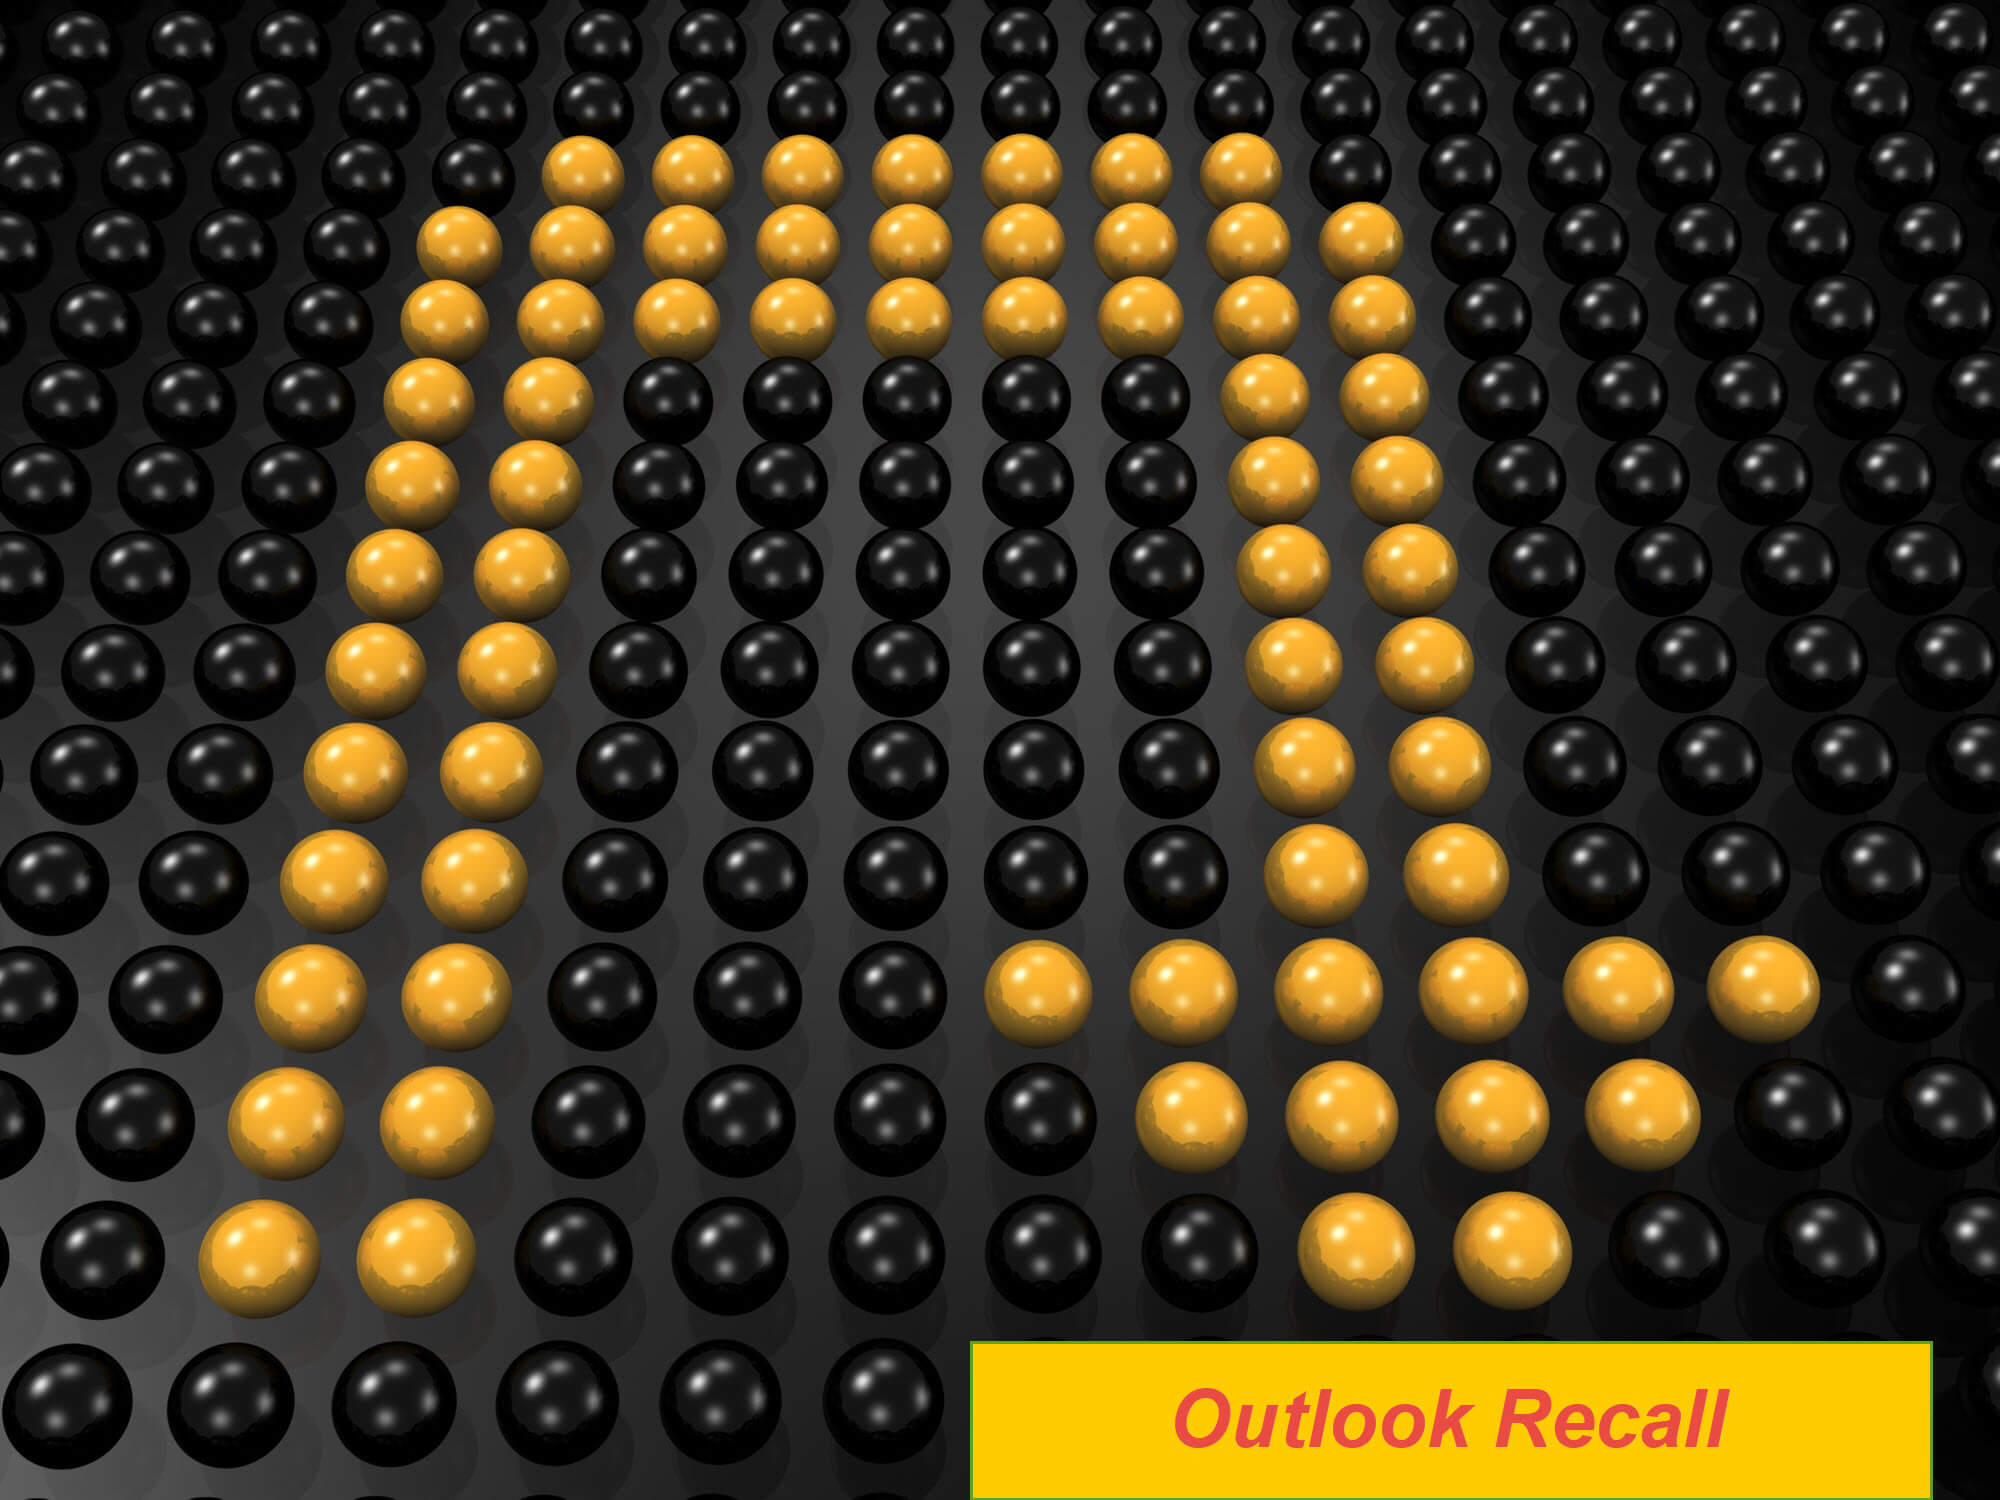 Outlook Recall to the Rescue! -